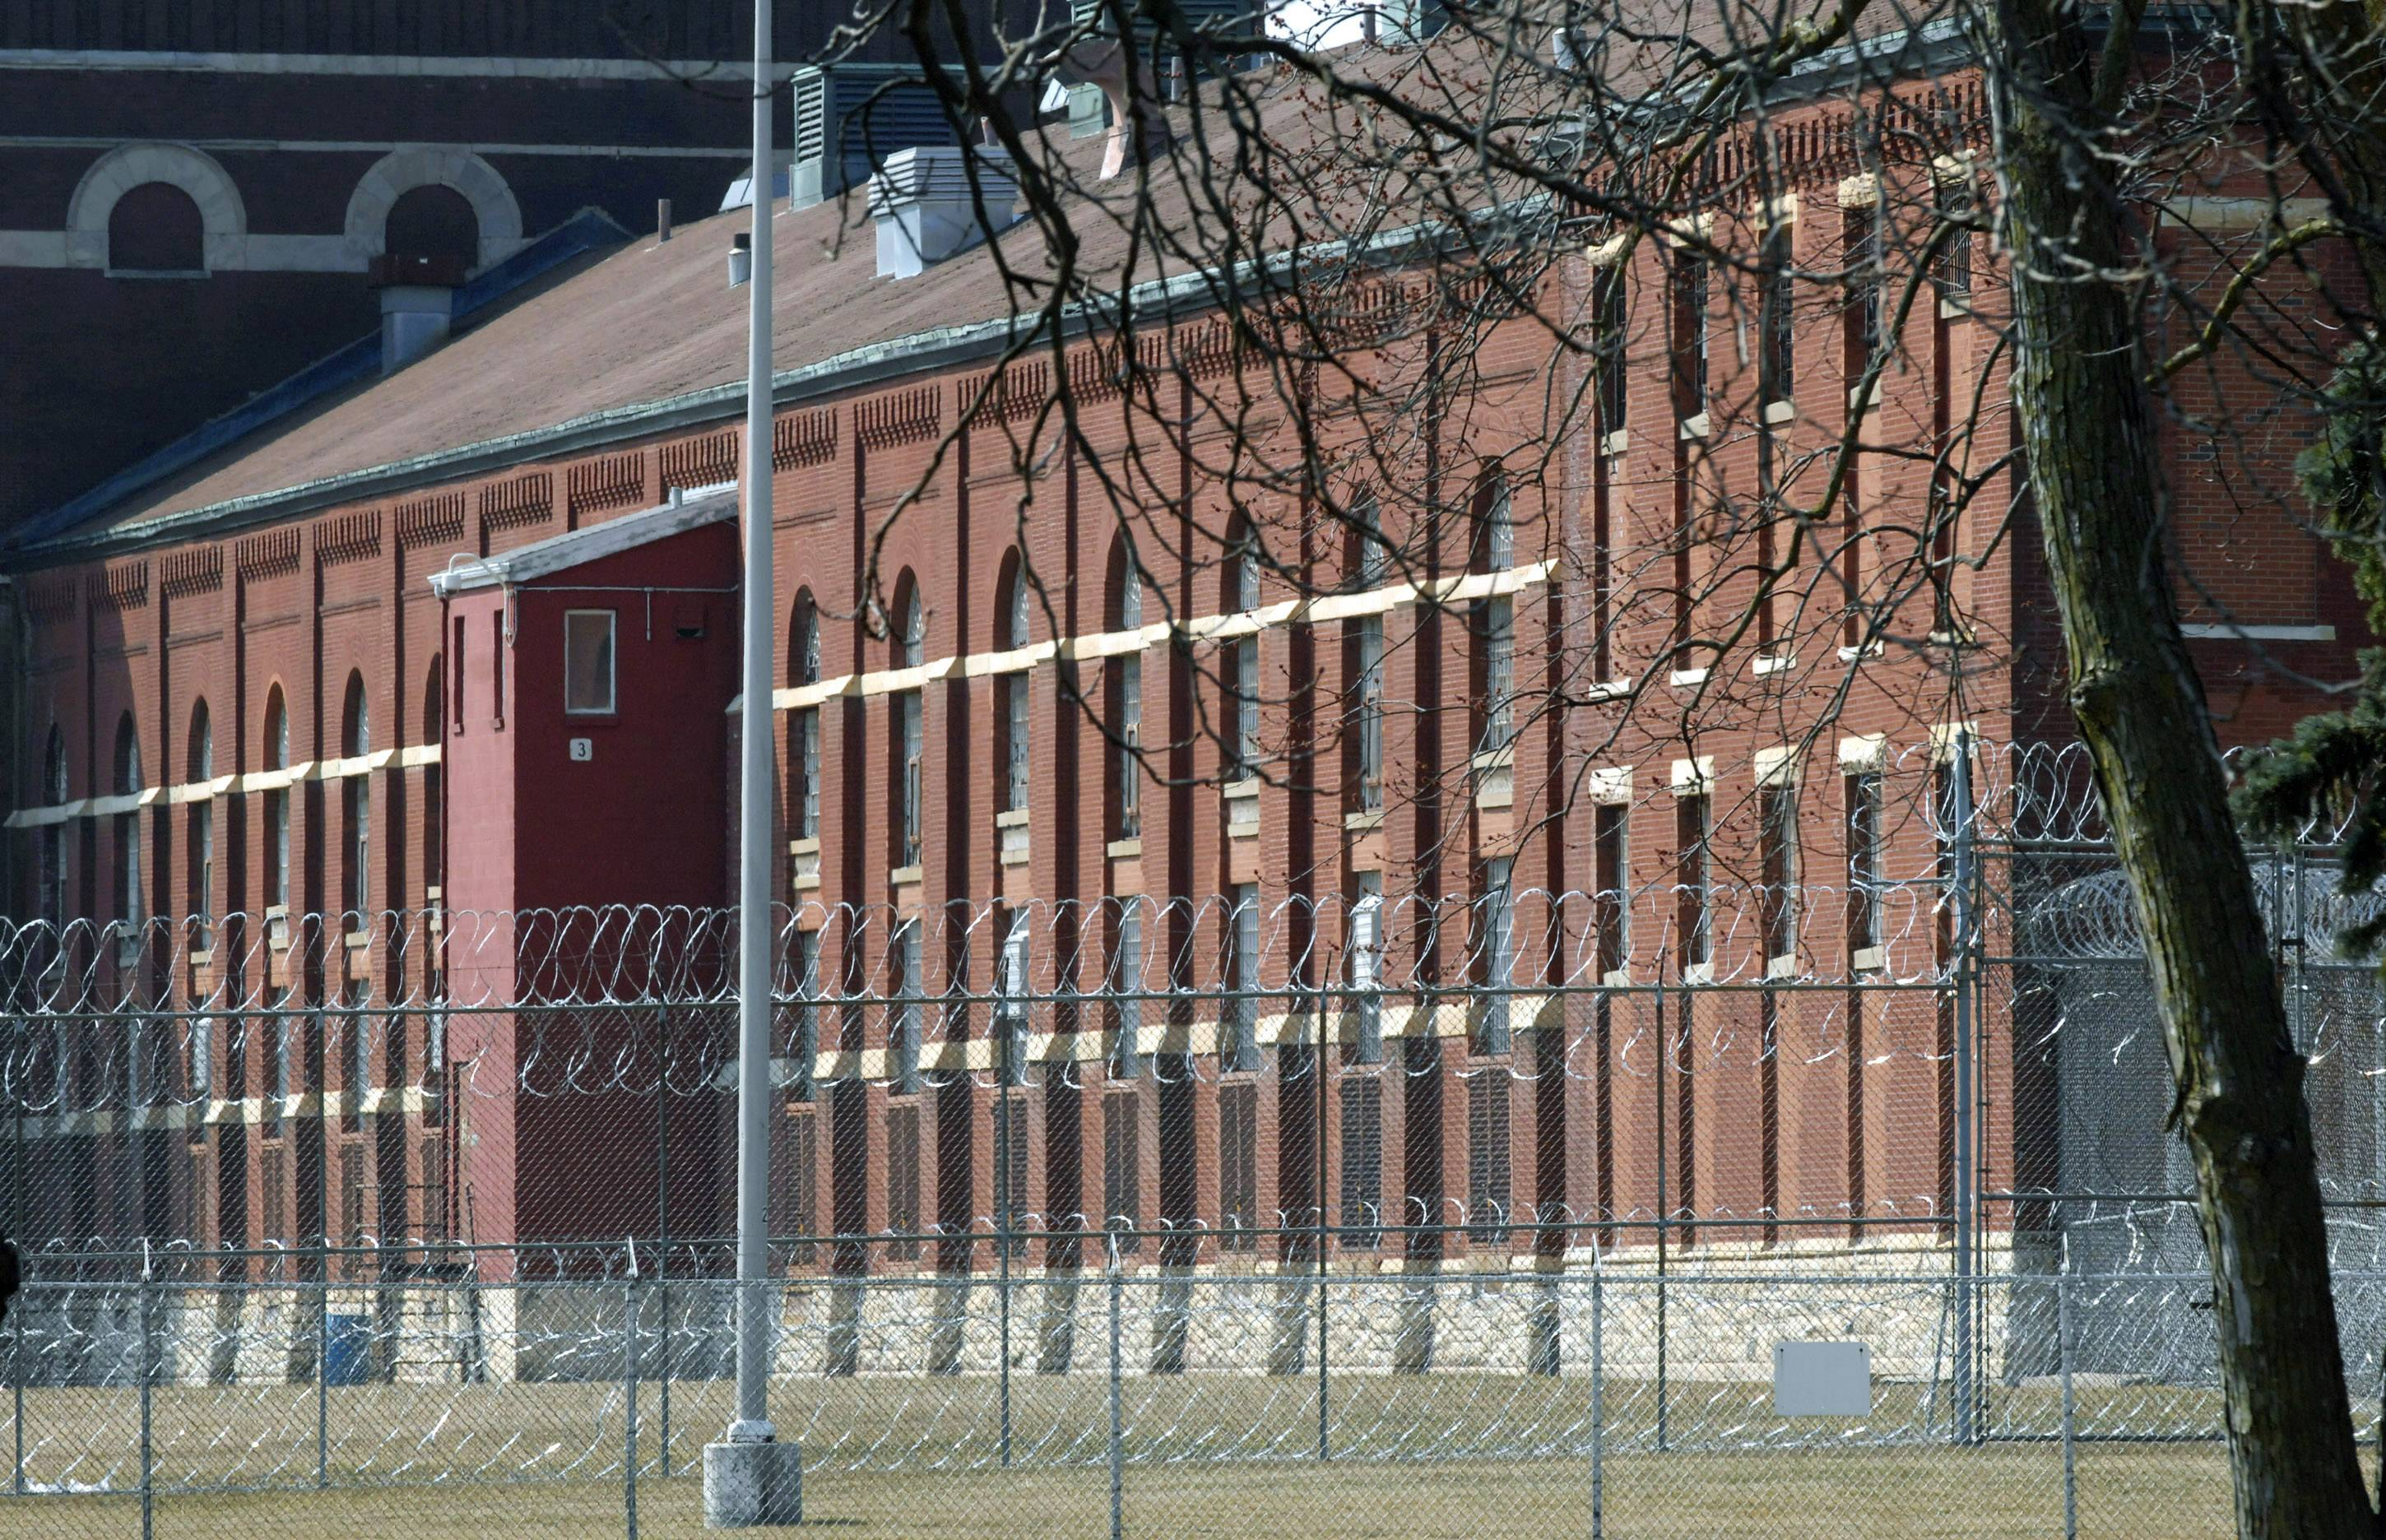 In this 2013 file photo, concertina wire surrounds the buildings of the Pontiac Correctional Center in Pontiac, Ill. Treating and housing mentally ill prisoners is costing more in Illinois. State documents show Illinois taxpayers will be billed more than $17.8 million to turn existing prison space into mental health care facilities.